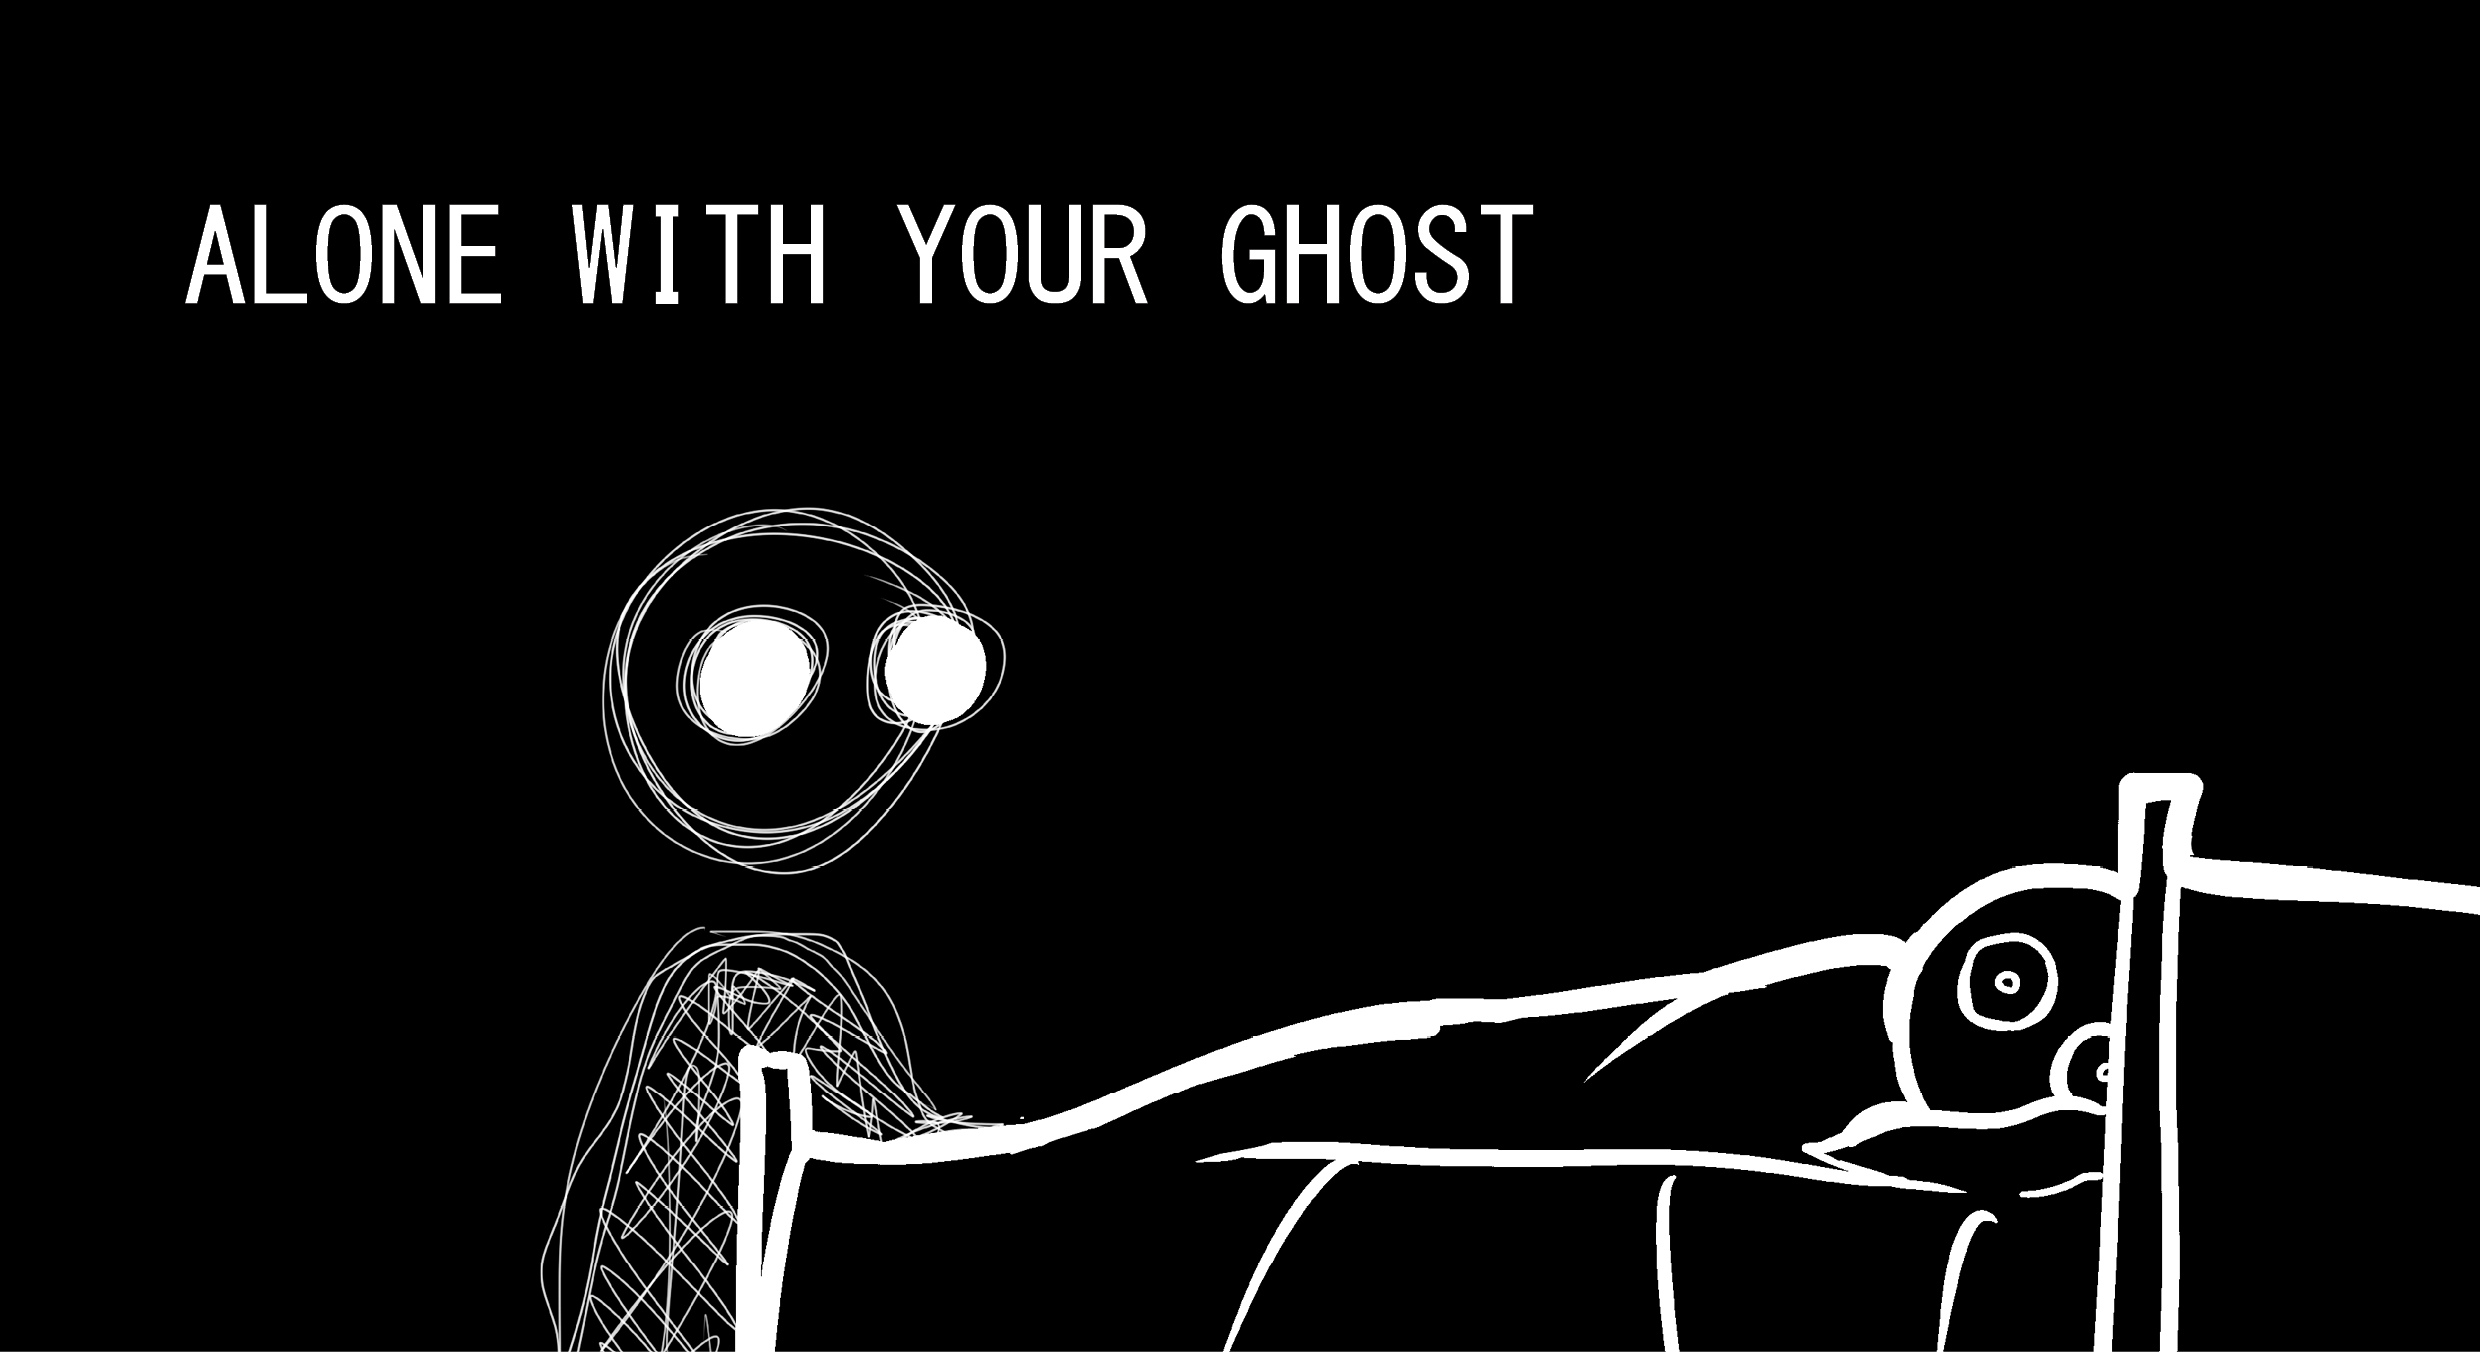 Alone With Your Ghost